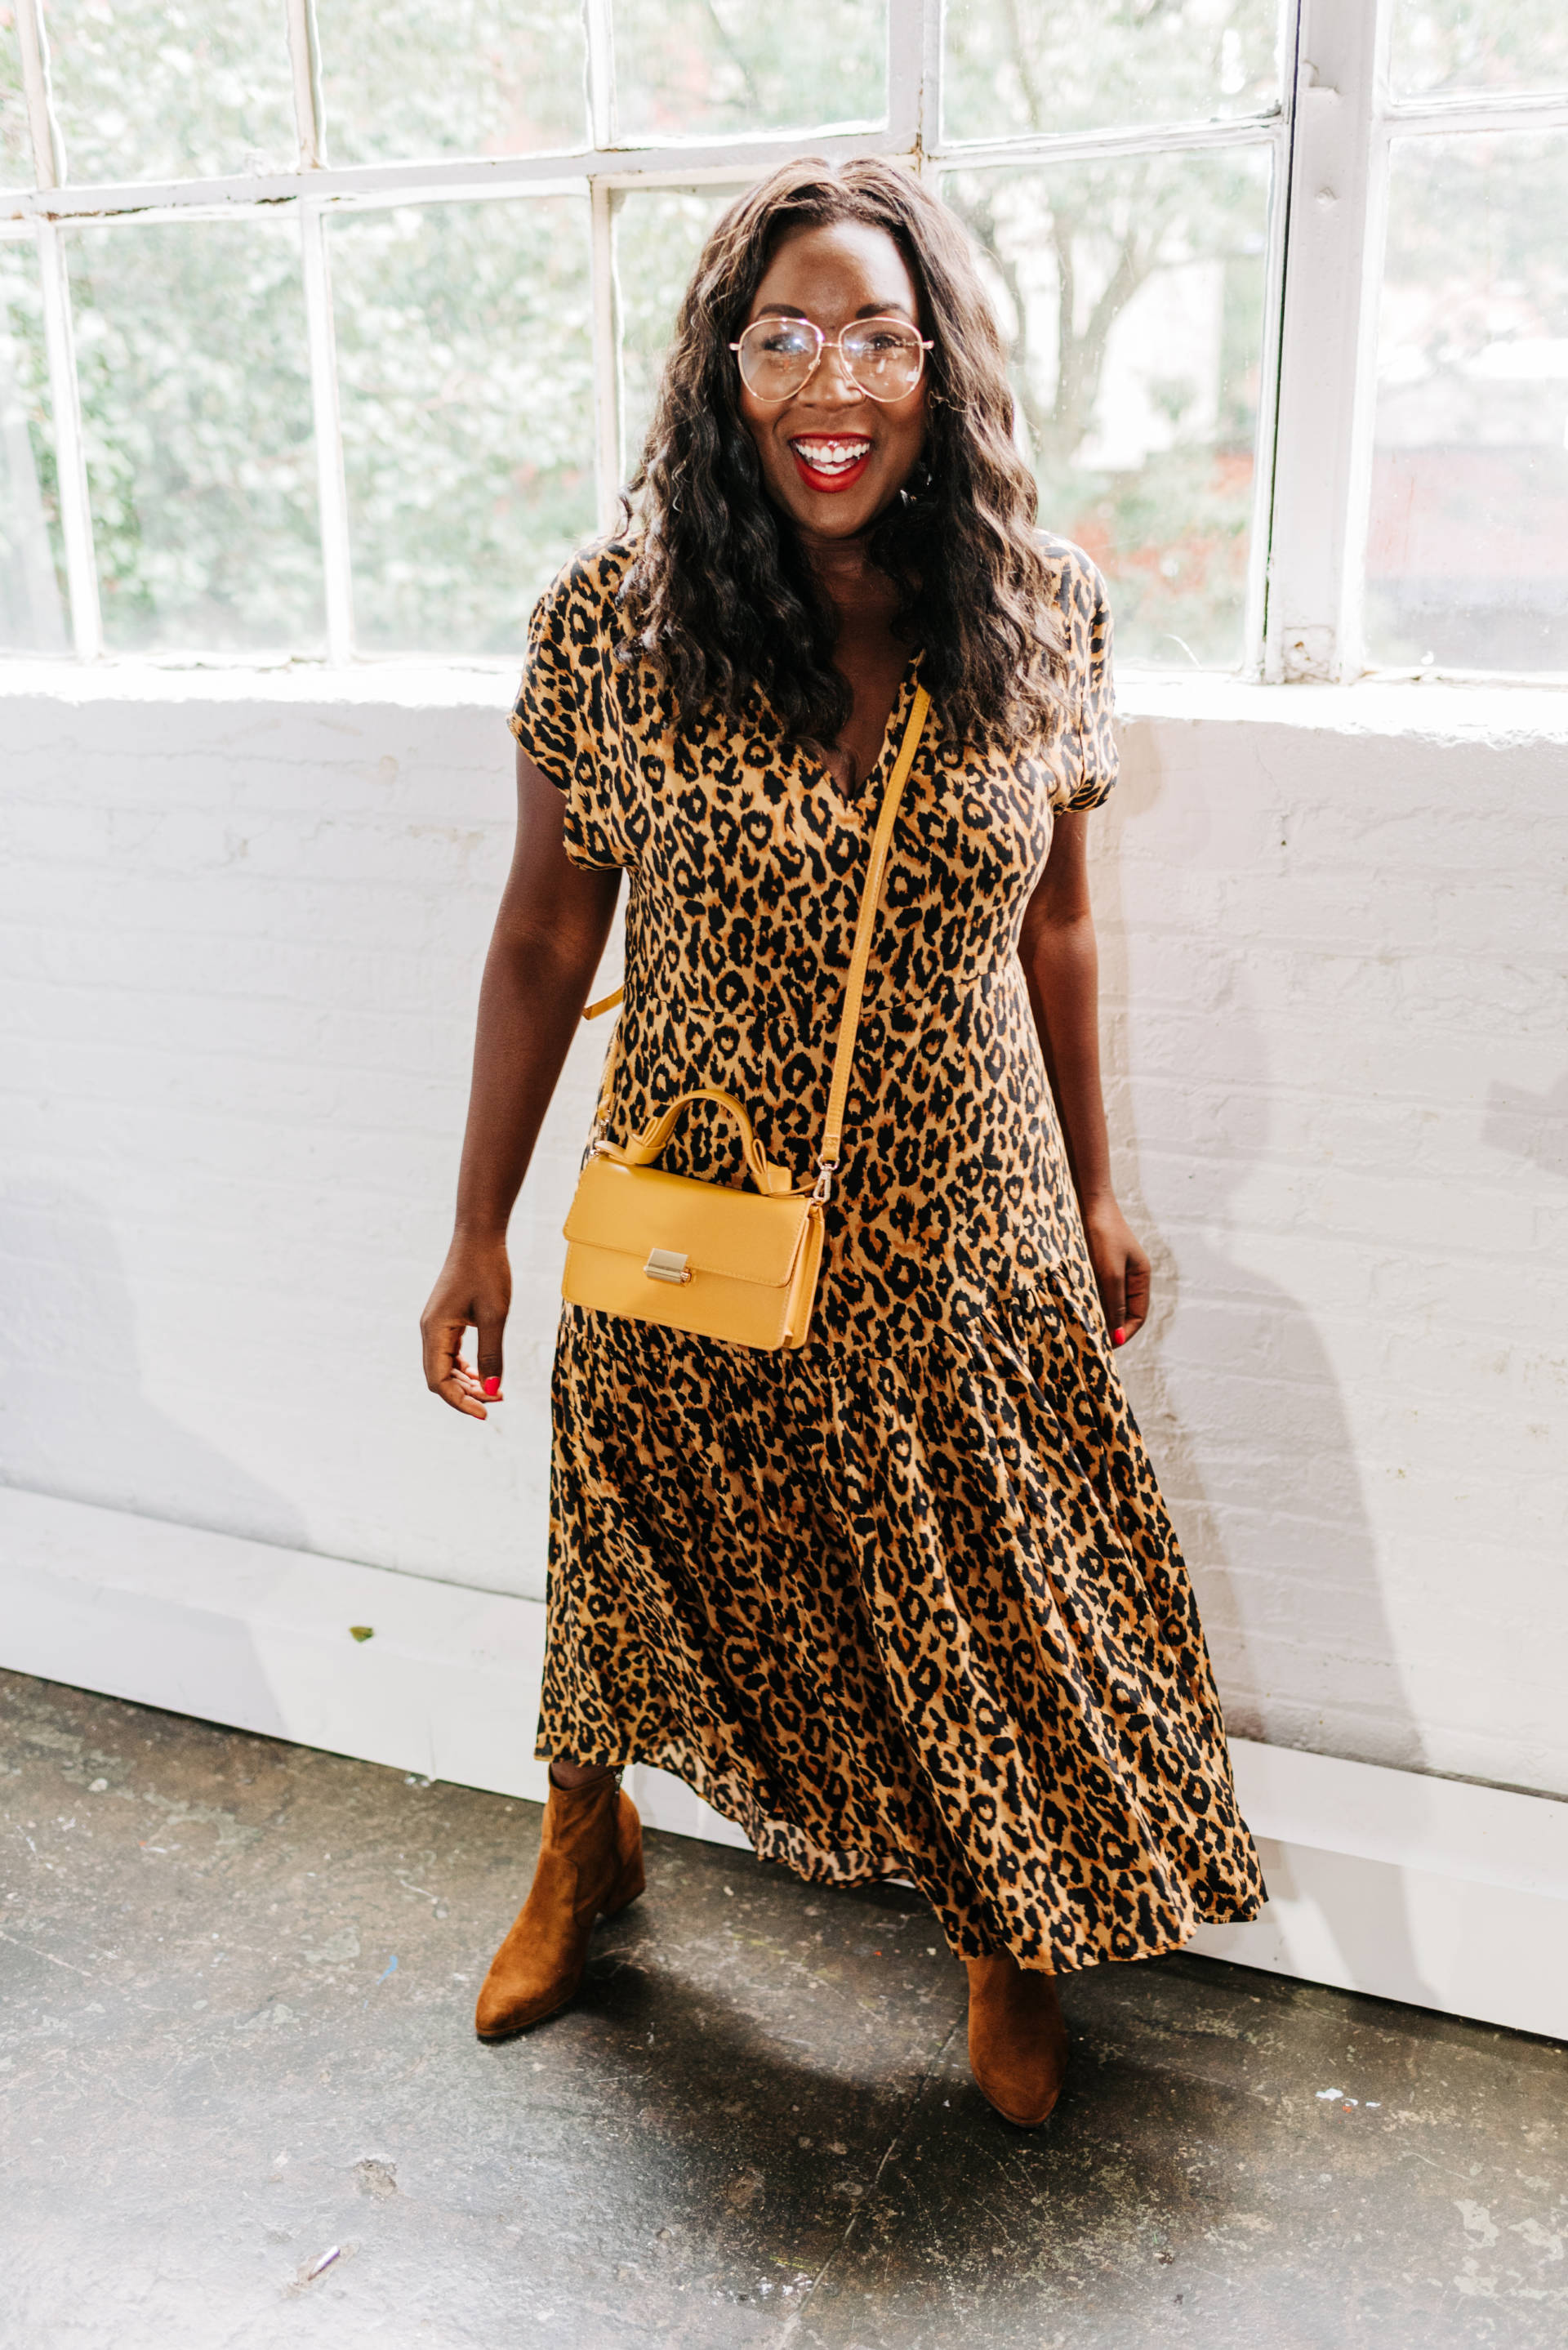 NYFW Recap Part 2: More outfits and some of my favorite shows and events of the entire week!